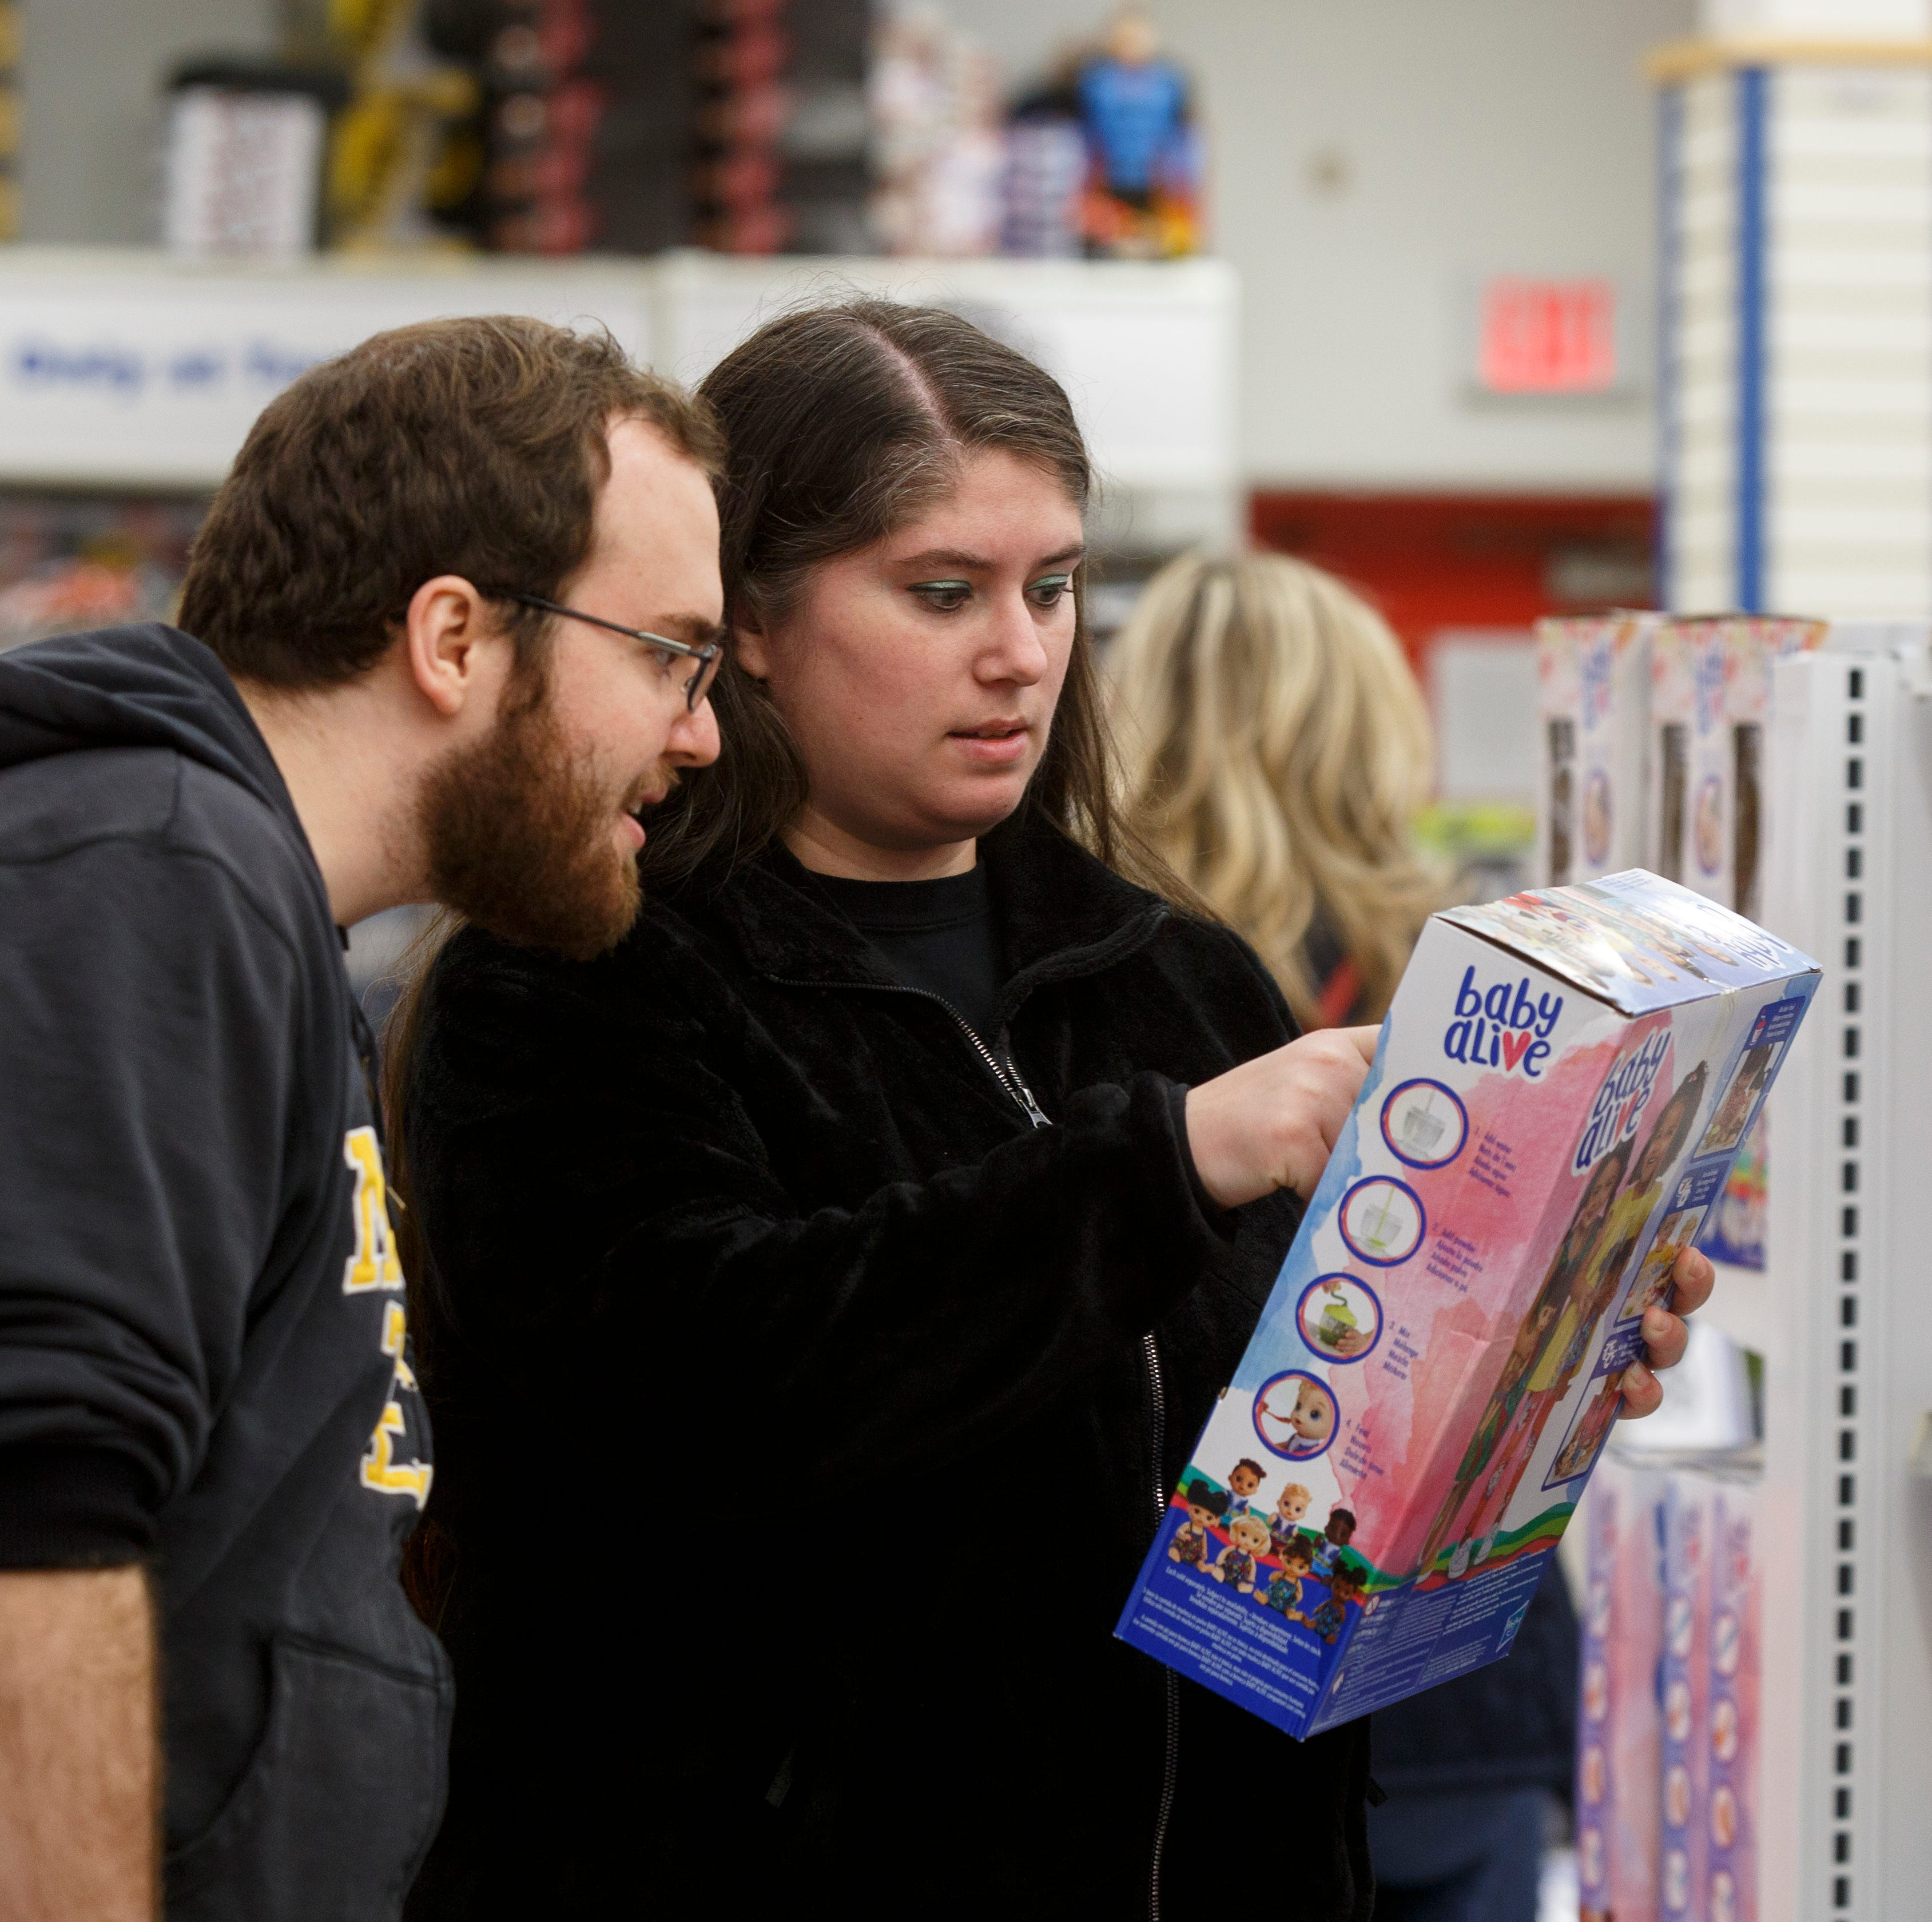 Shopping for nostalgia: Toys R Us lures Michigan fans to Canada